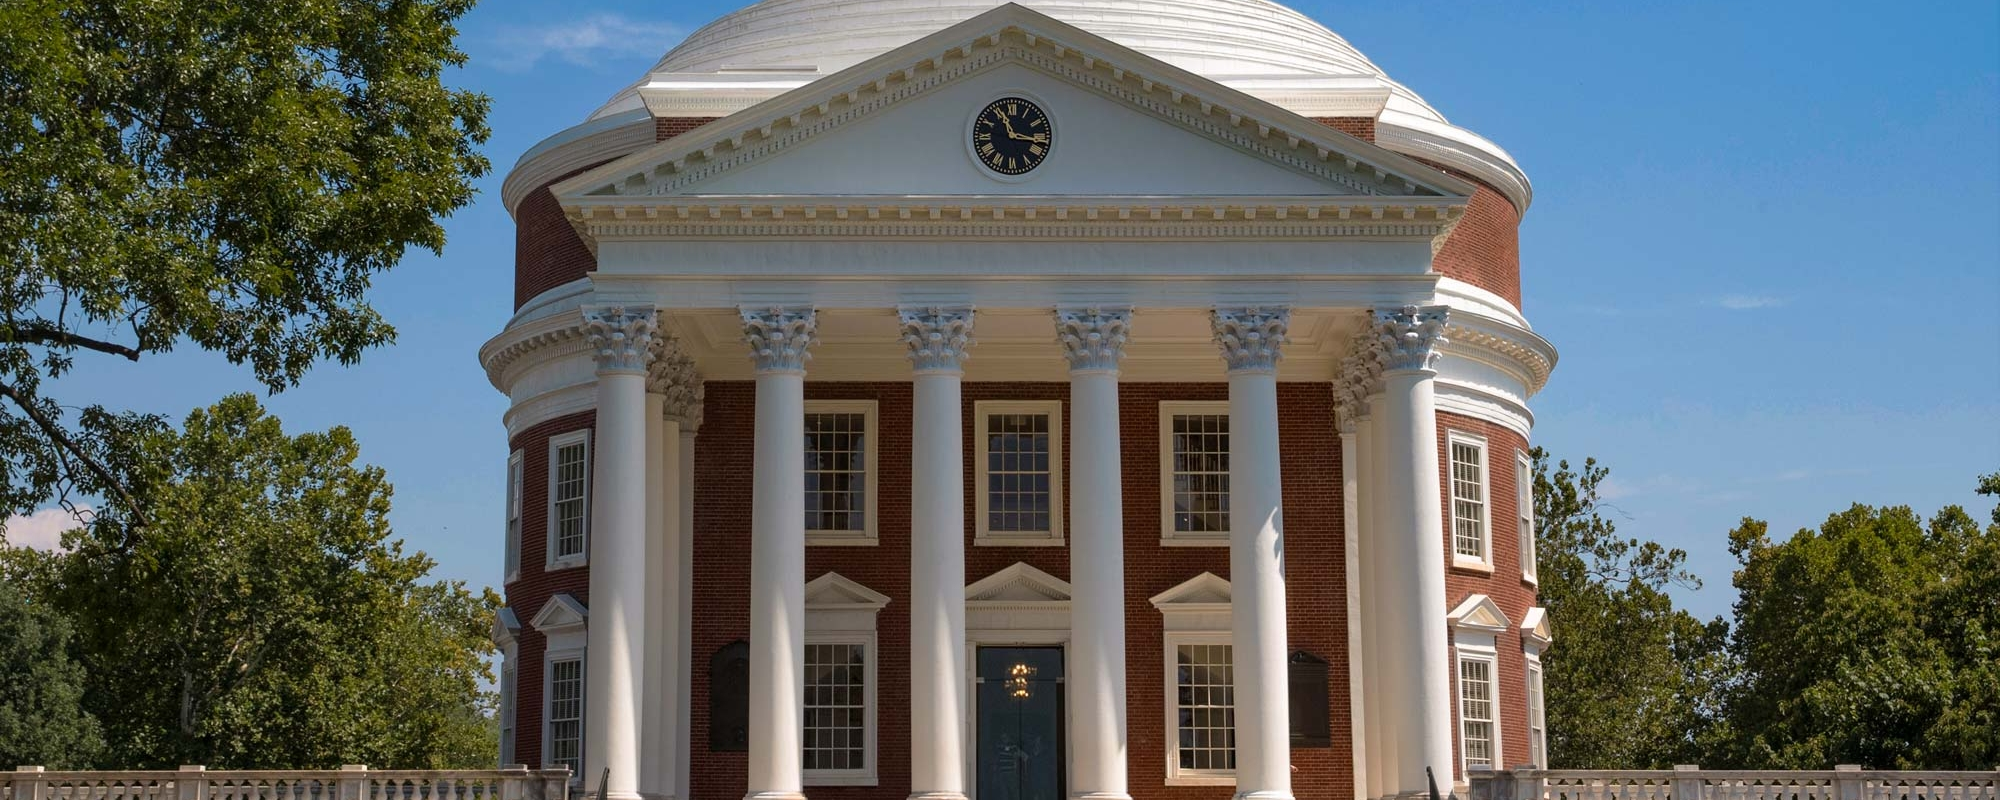 UVA Announces That All Students, Regardless of Citizenship Status, Are Eligible to Enroll